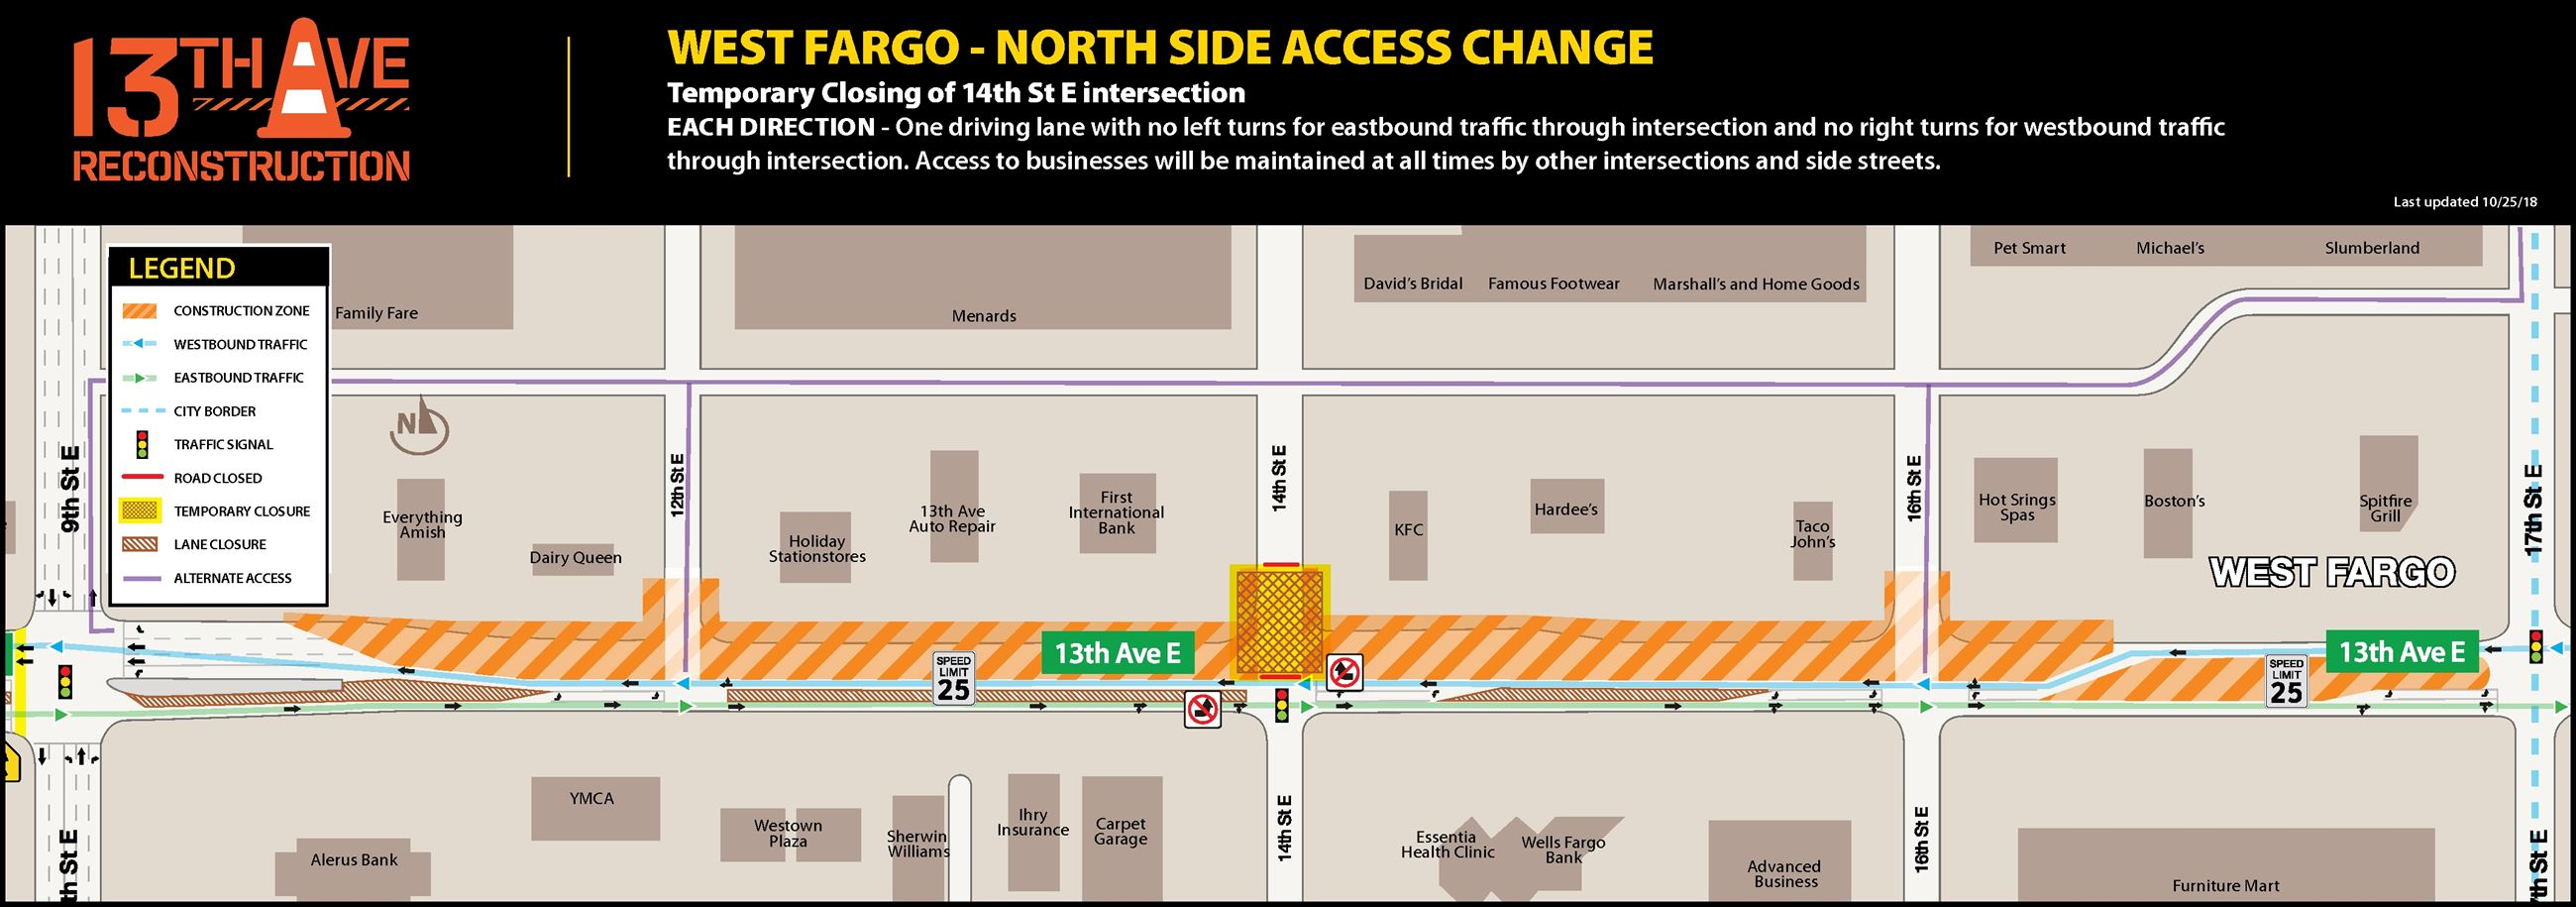 West Fargo north side access change